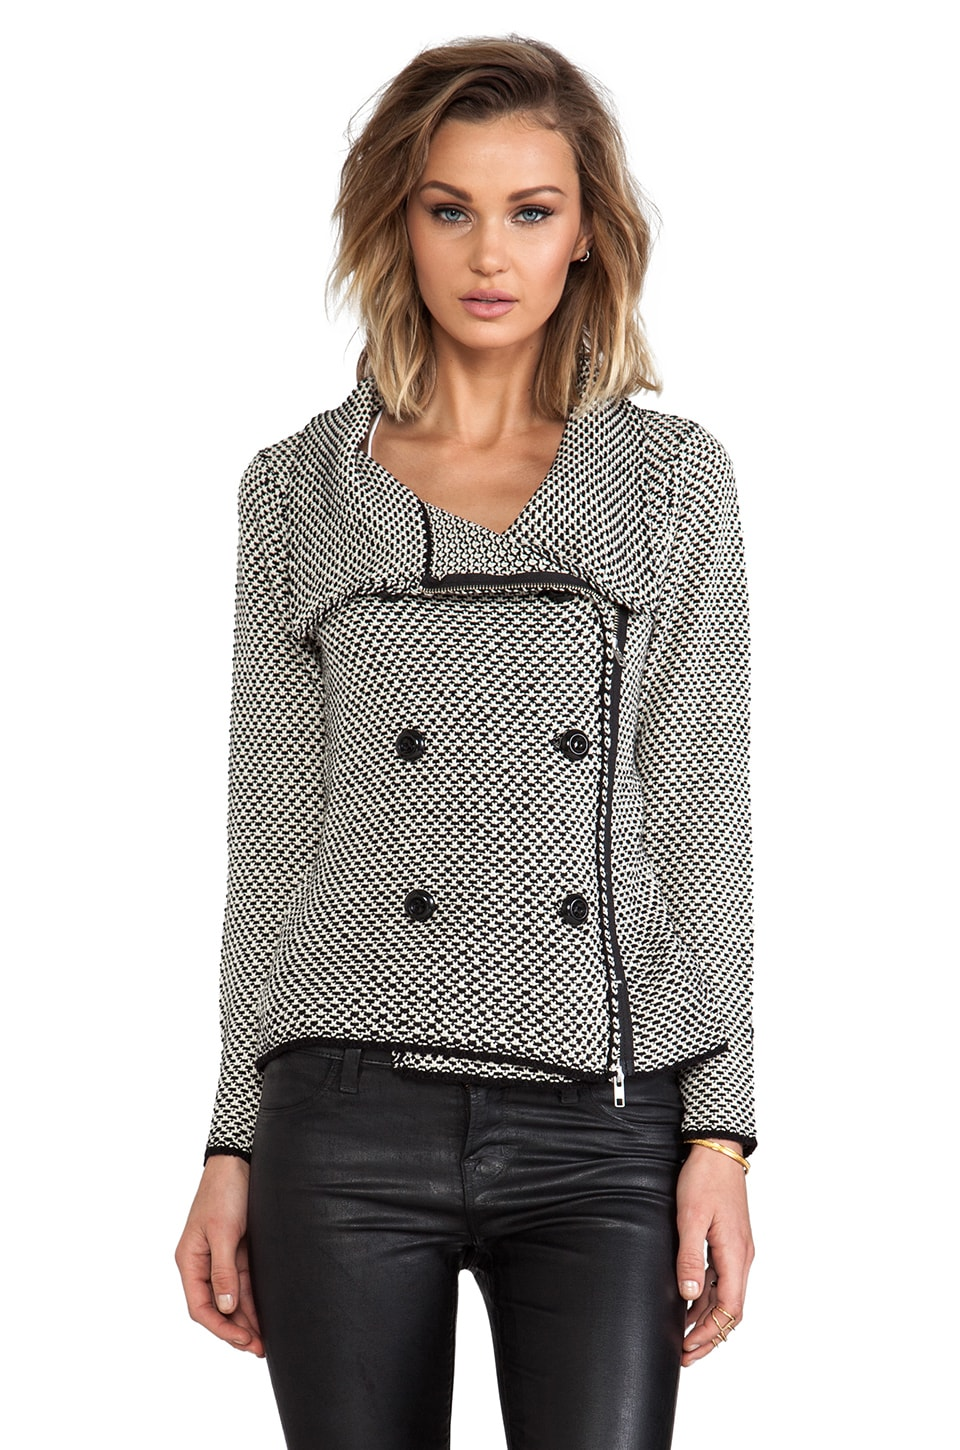 Tracy Reese Fall Specials Tweed Cardigan in Black/Ivory